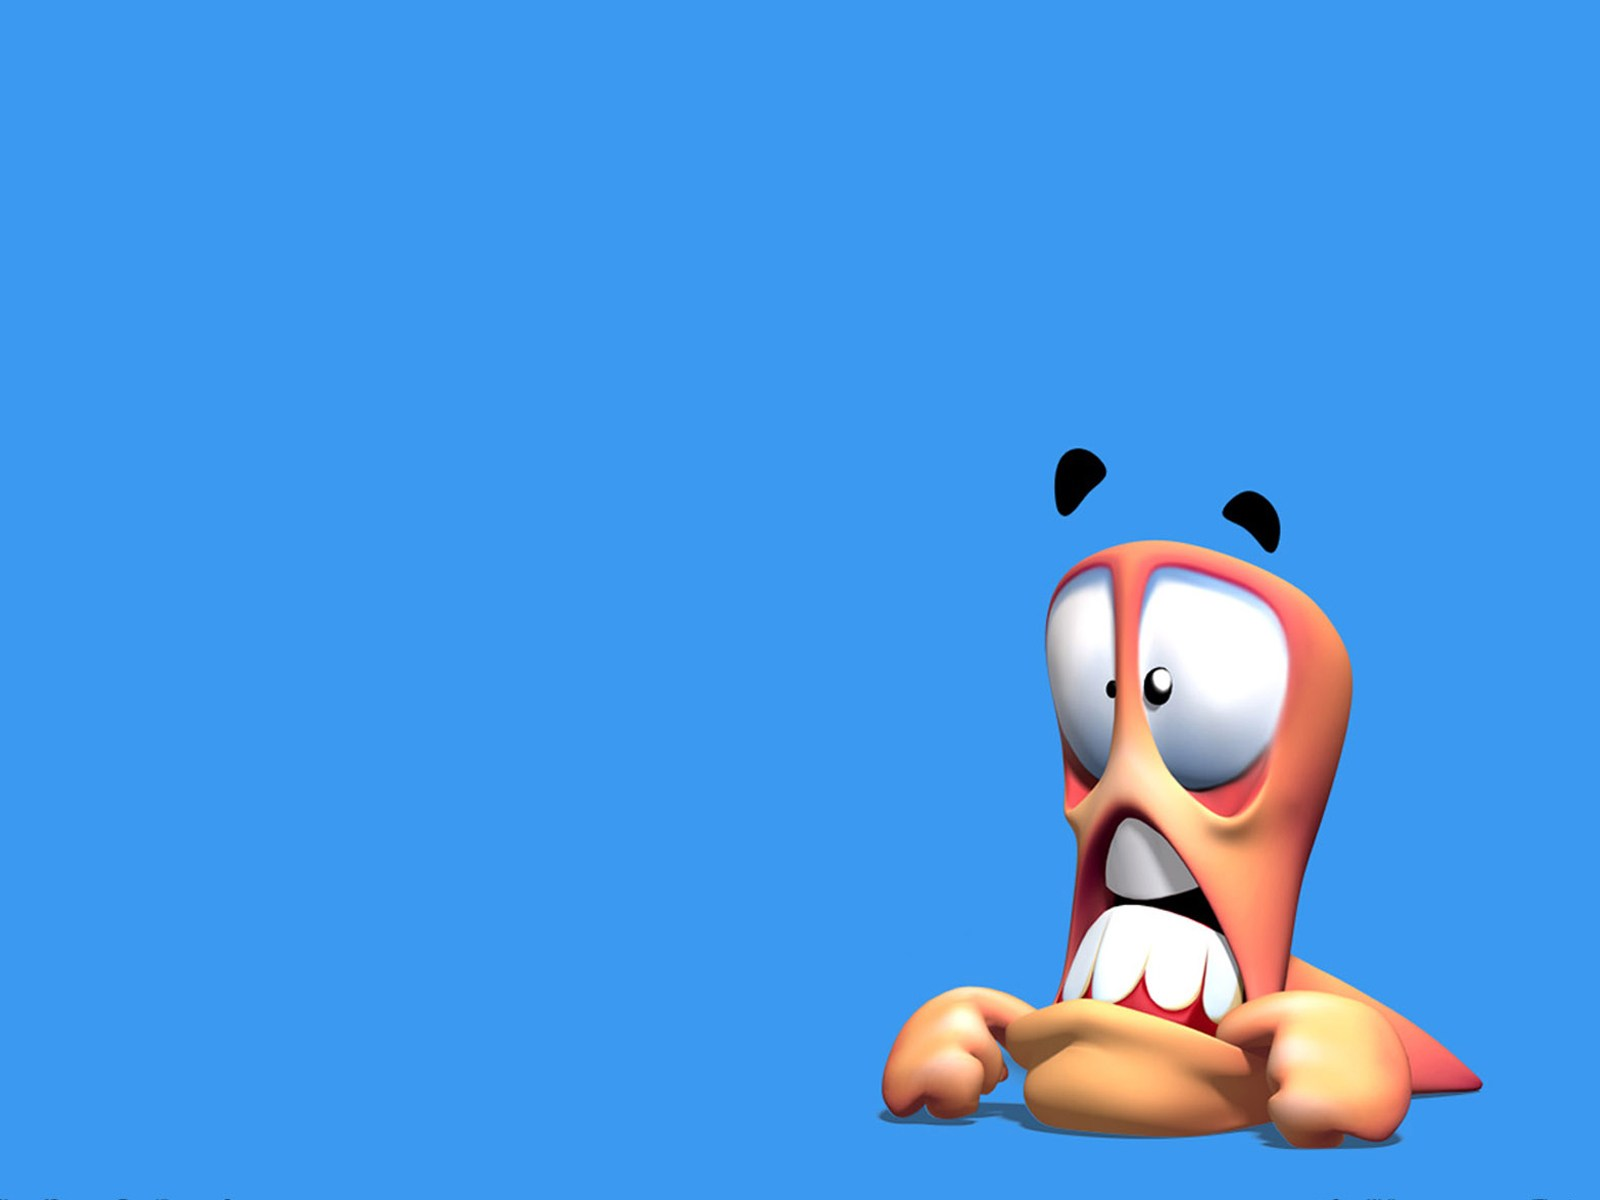 Funny 3d Cartoon Wallpapers: High Resolution Wallpaper: Funny Game Characters Wallpapers